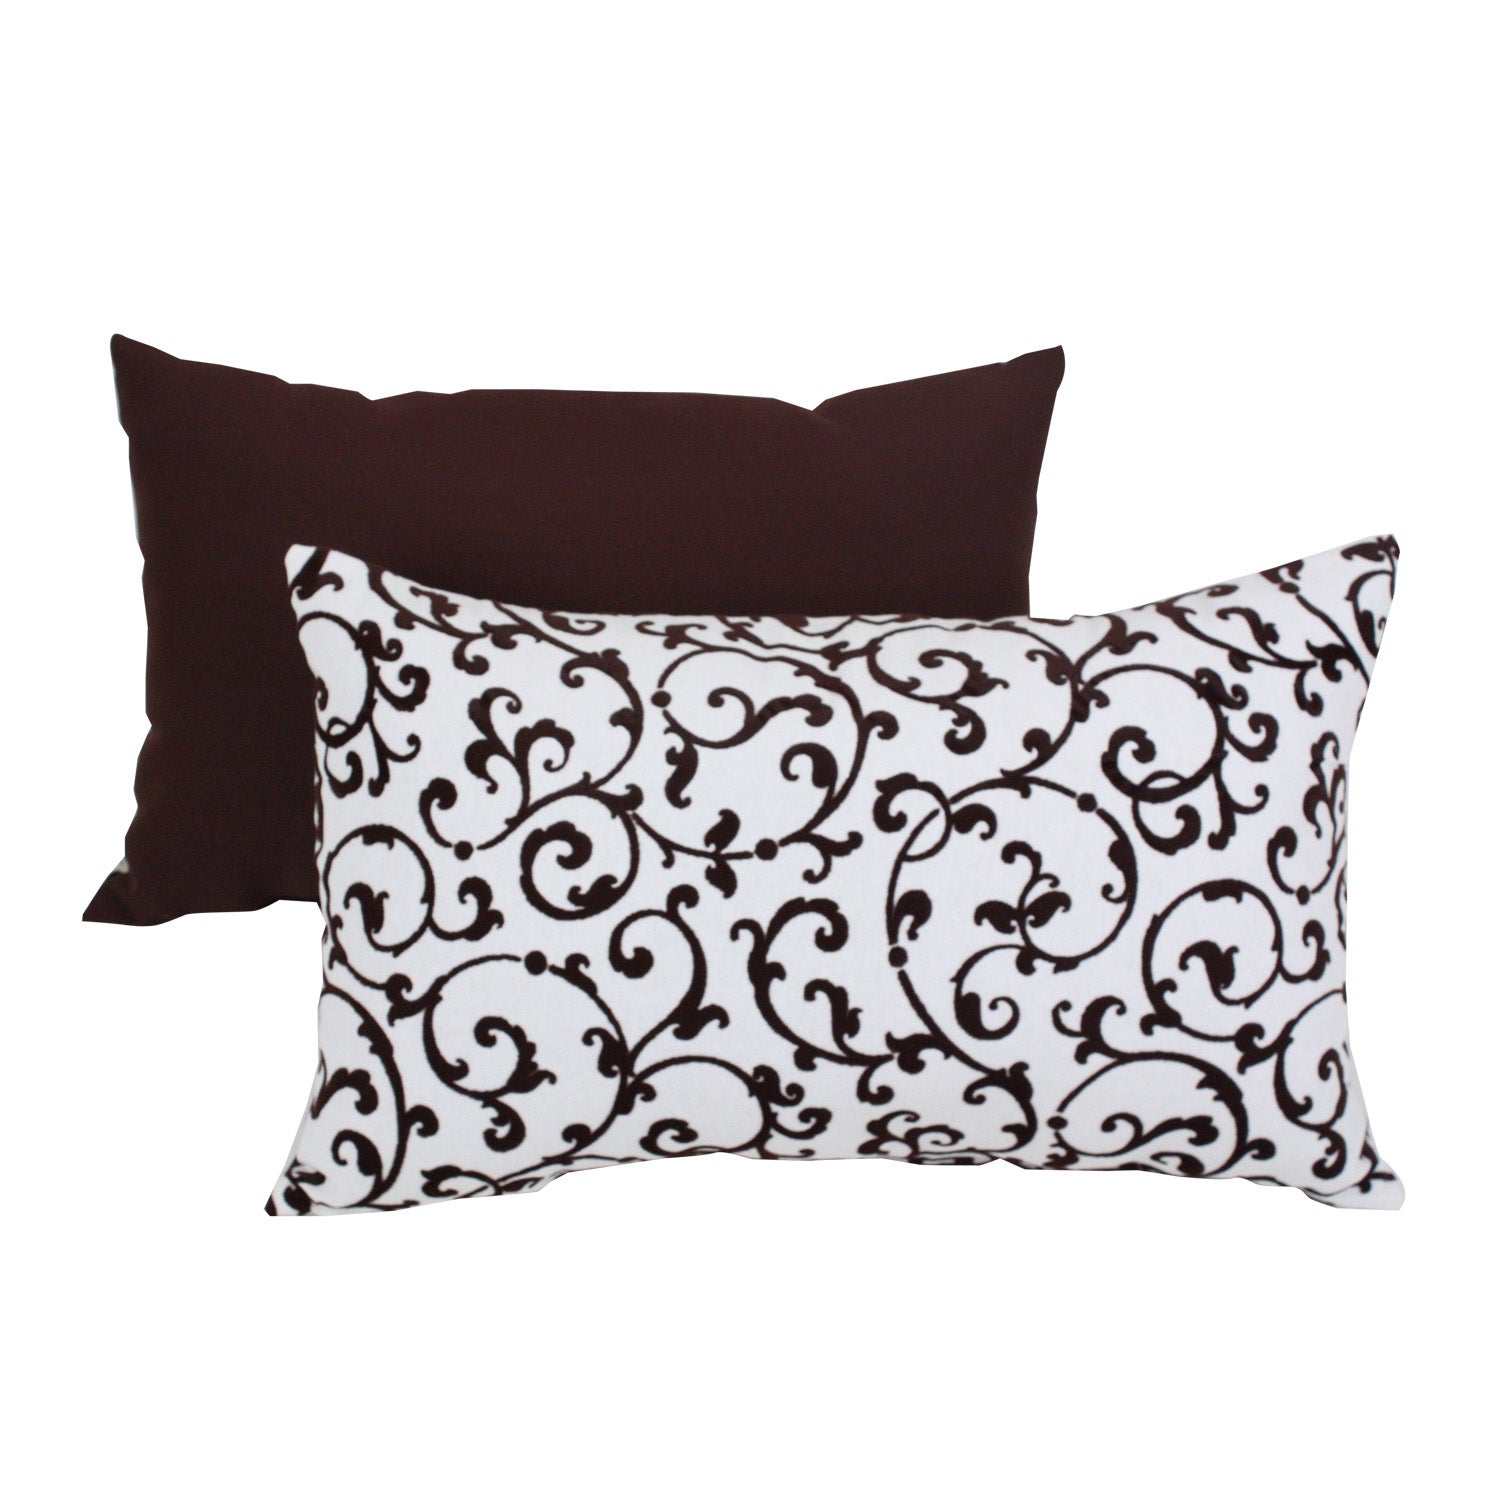 Pillow Perfect Brown Polyester/Cotton Blend Scroll Flocked Throw Pillow